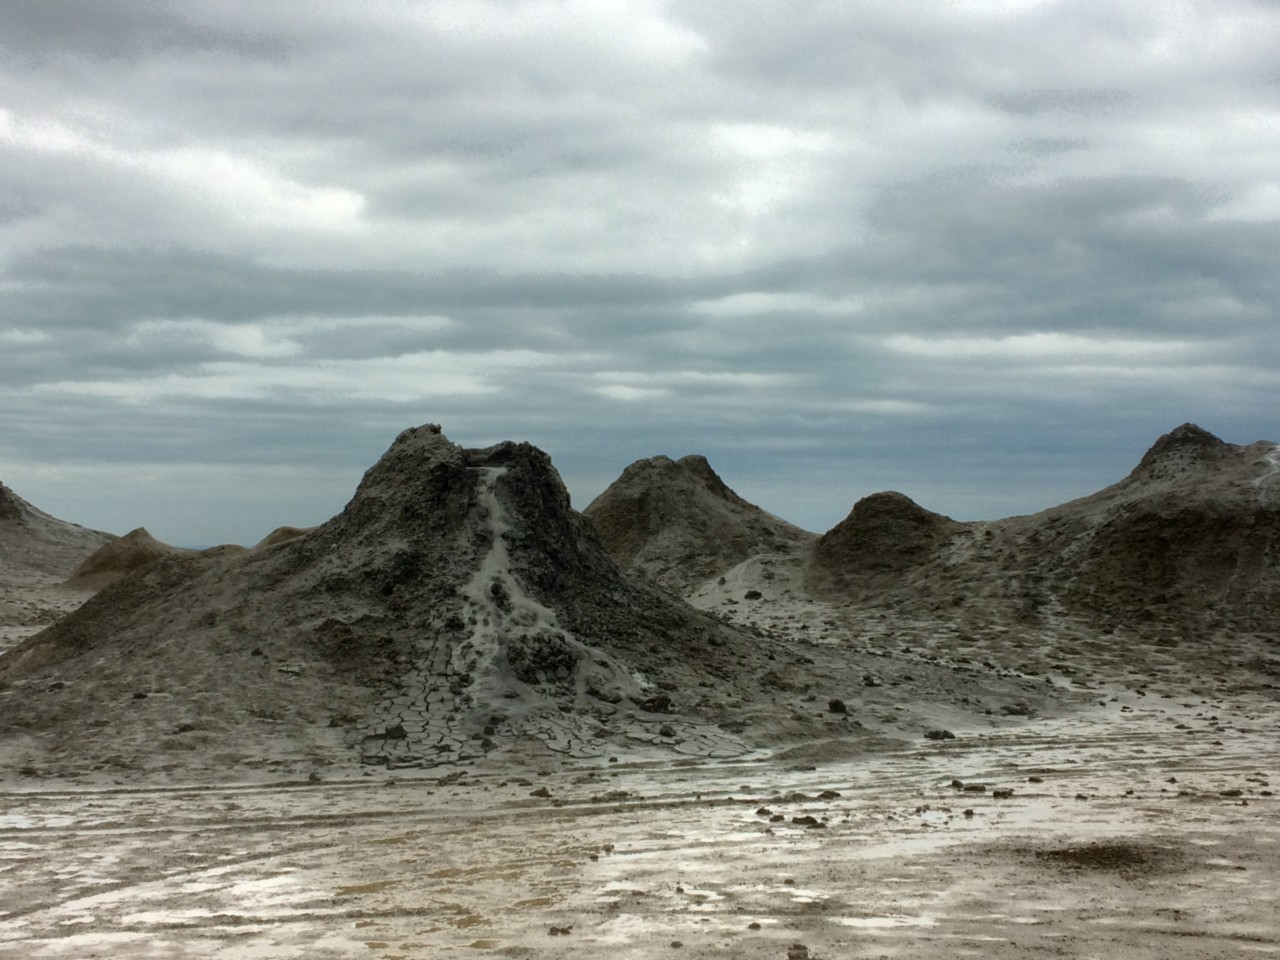 Mud volcanoes and scary clouds